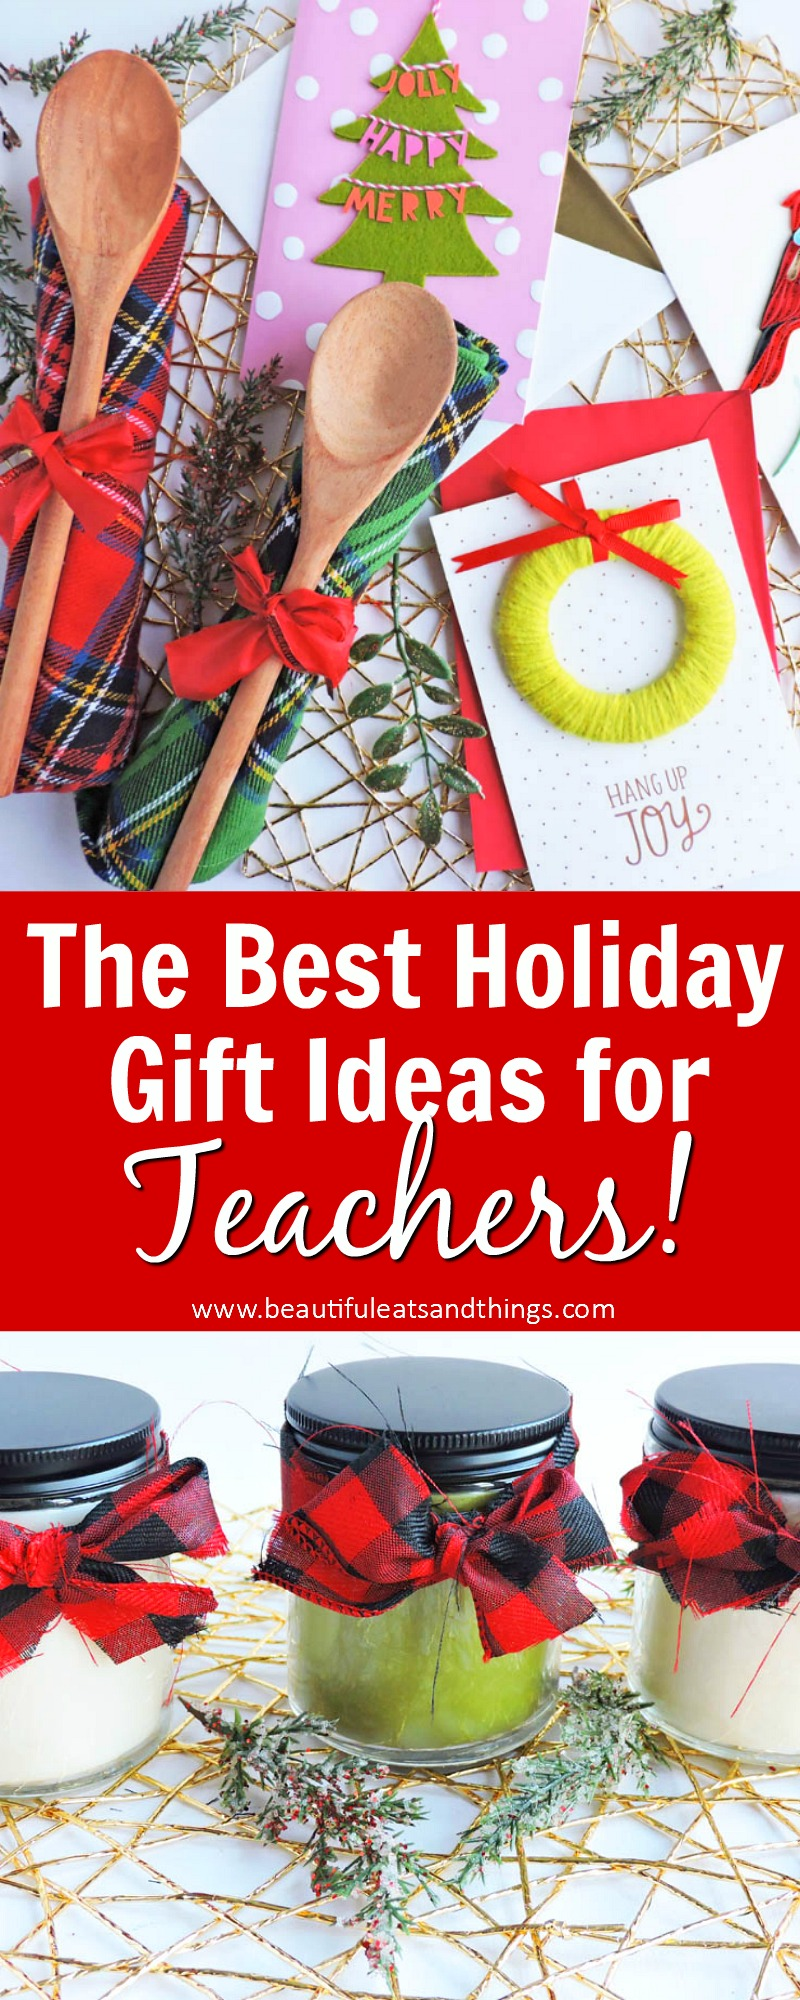 Thoughtful Holiday Gift Ideas for Teachers featuring Hallmark Paper Wonder and Signature Cards